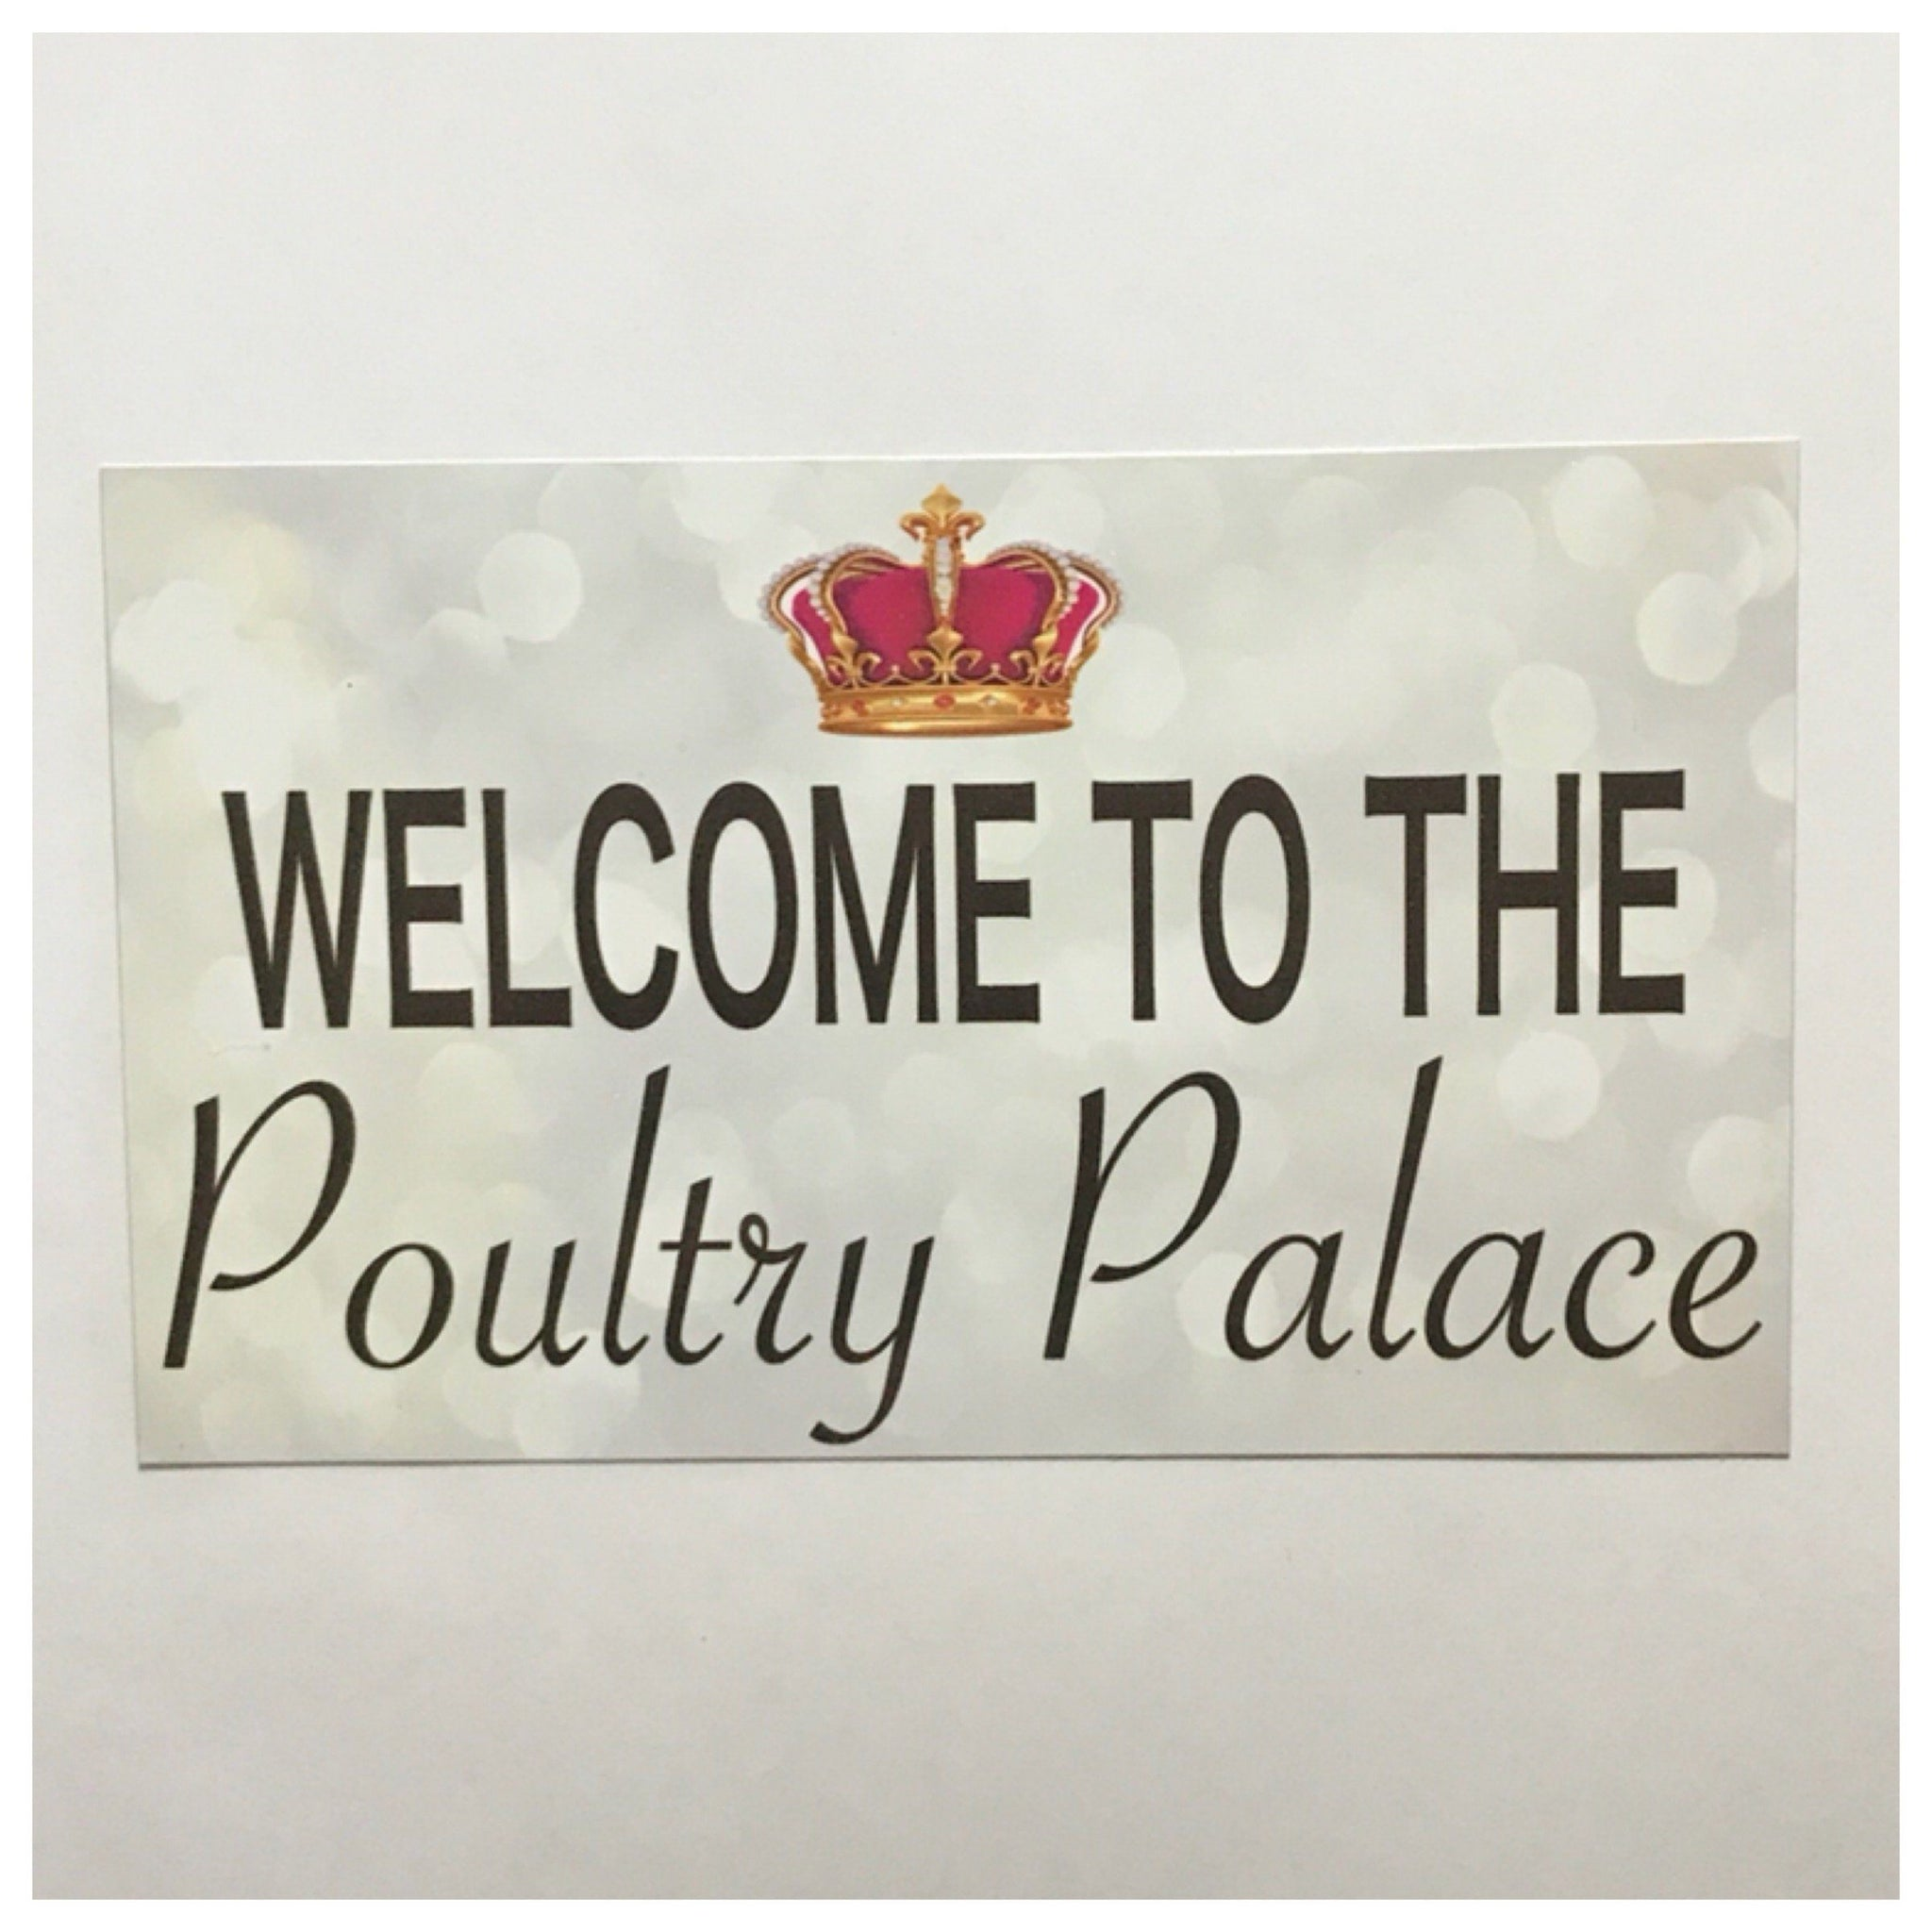 Welcome To The Poultry Palace Sign - The Renmy Store